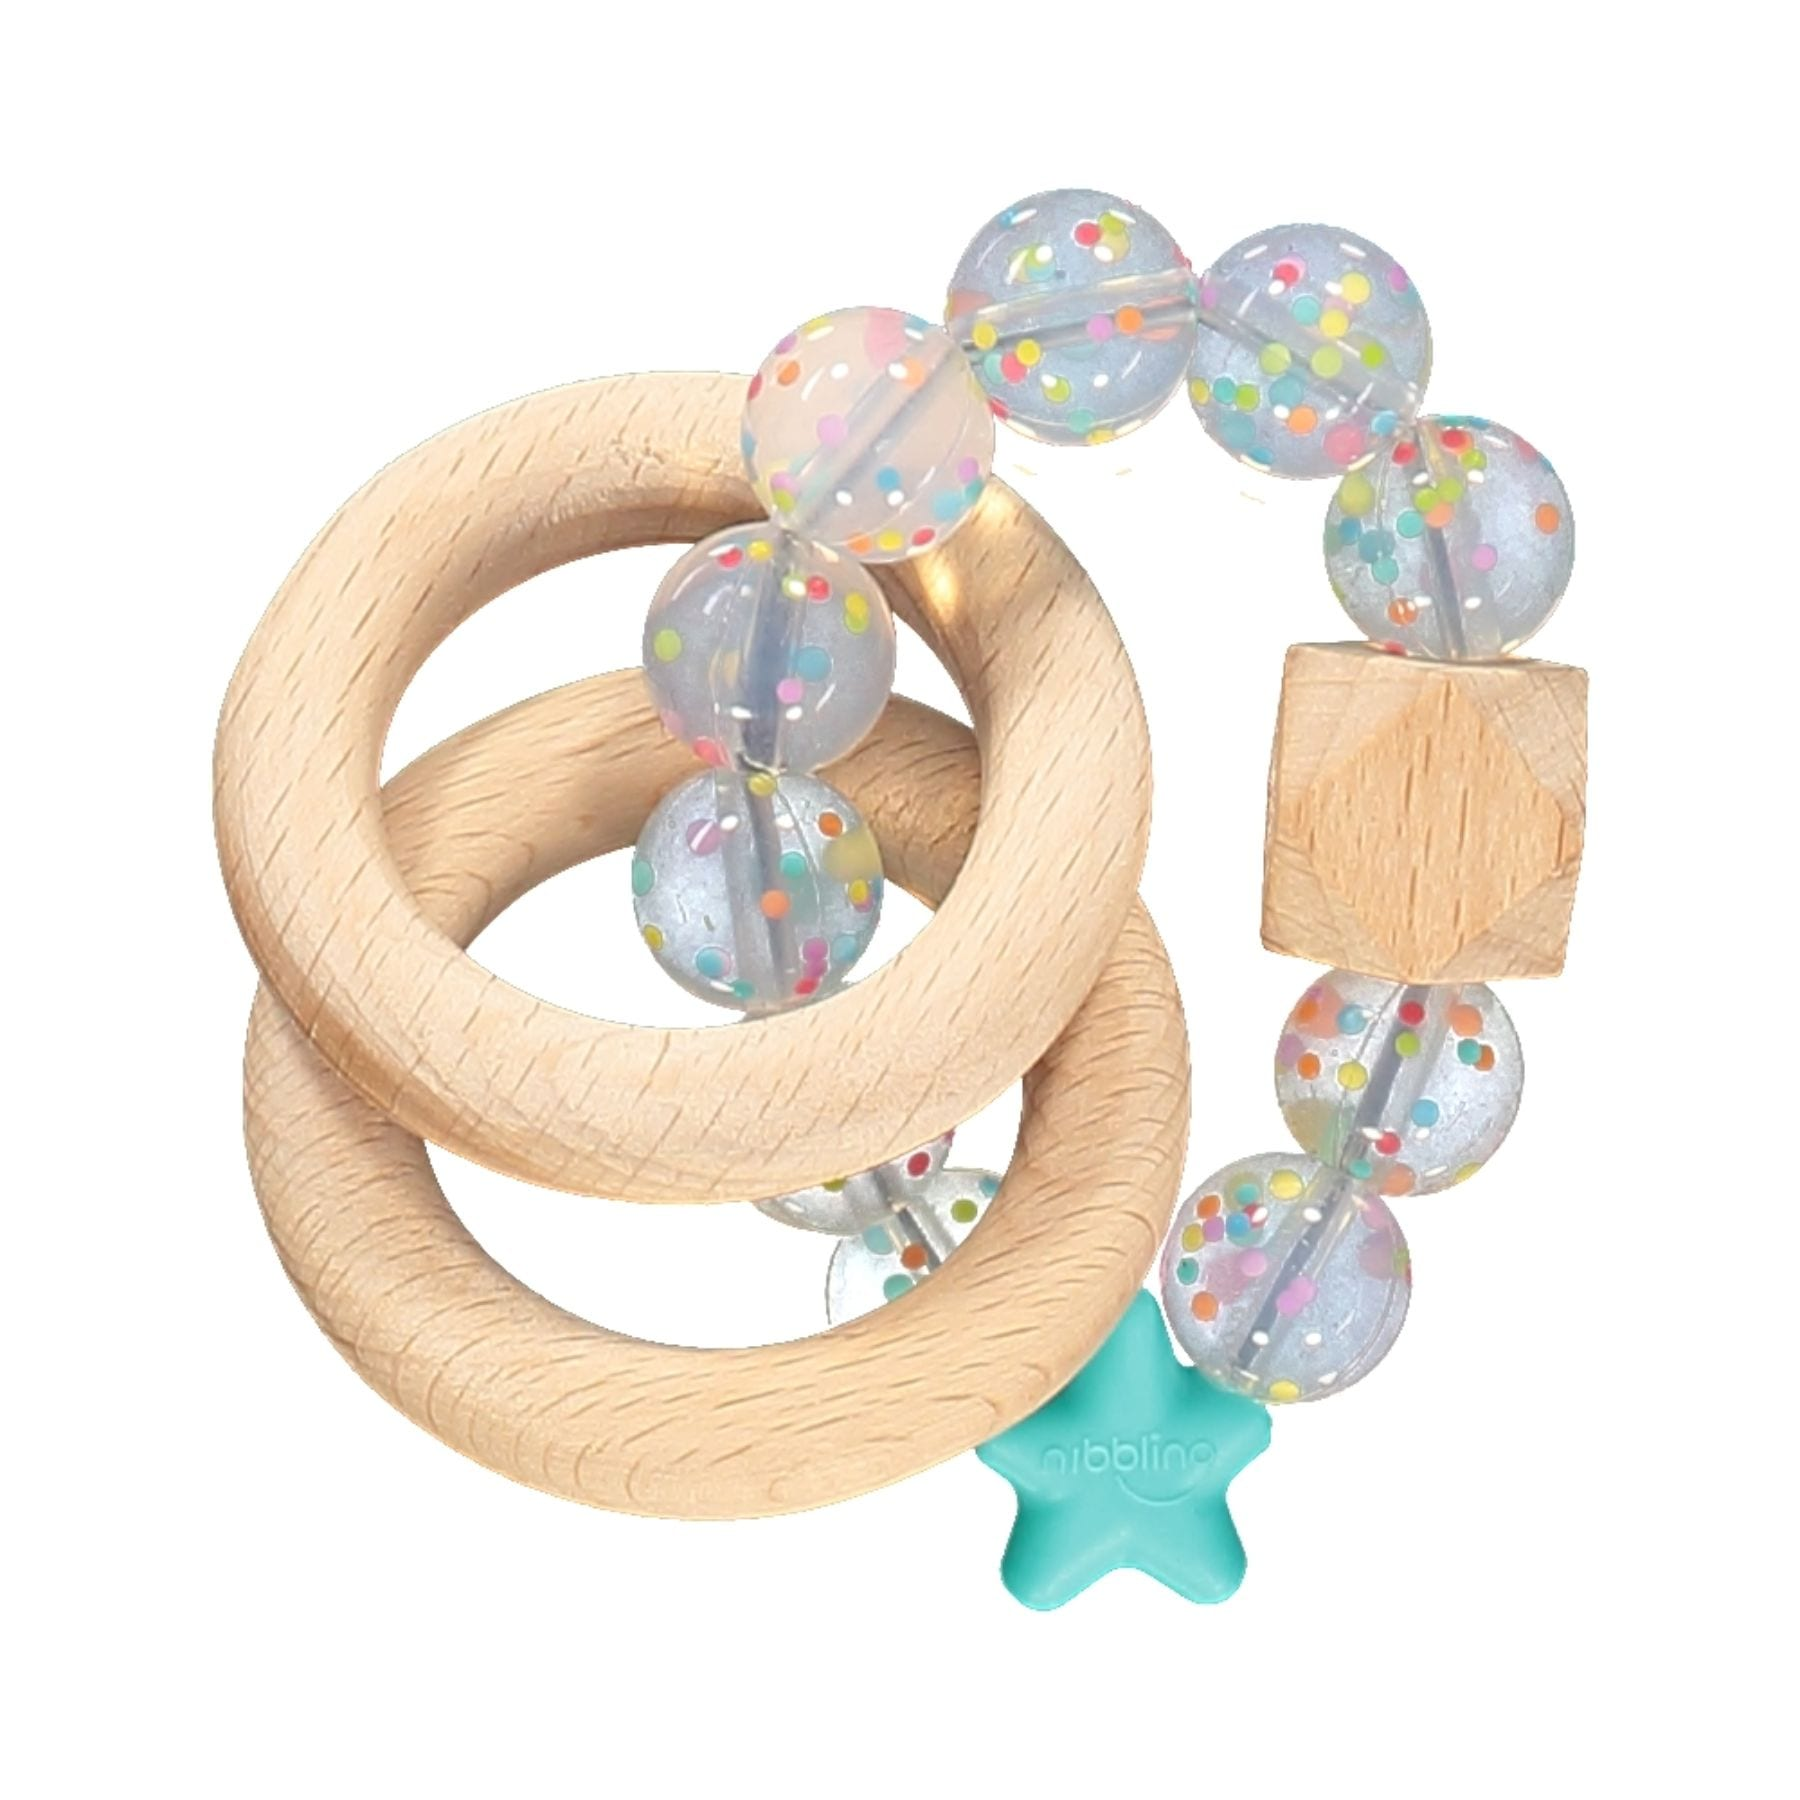 Nibbling Silicone & Wood Rattle - Candy Turquoise